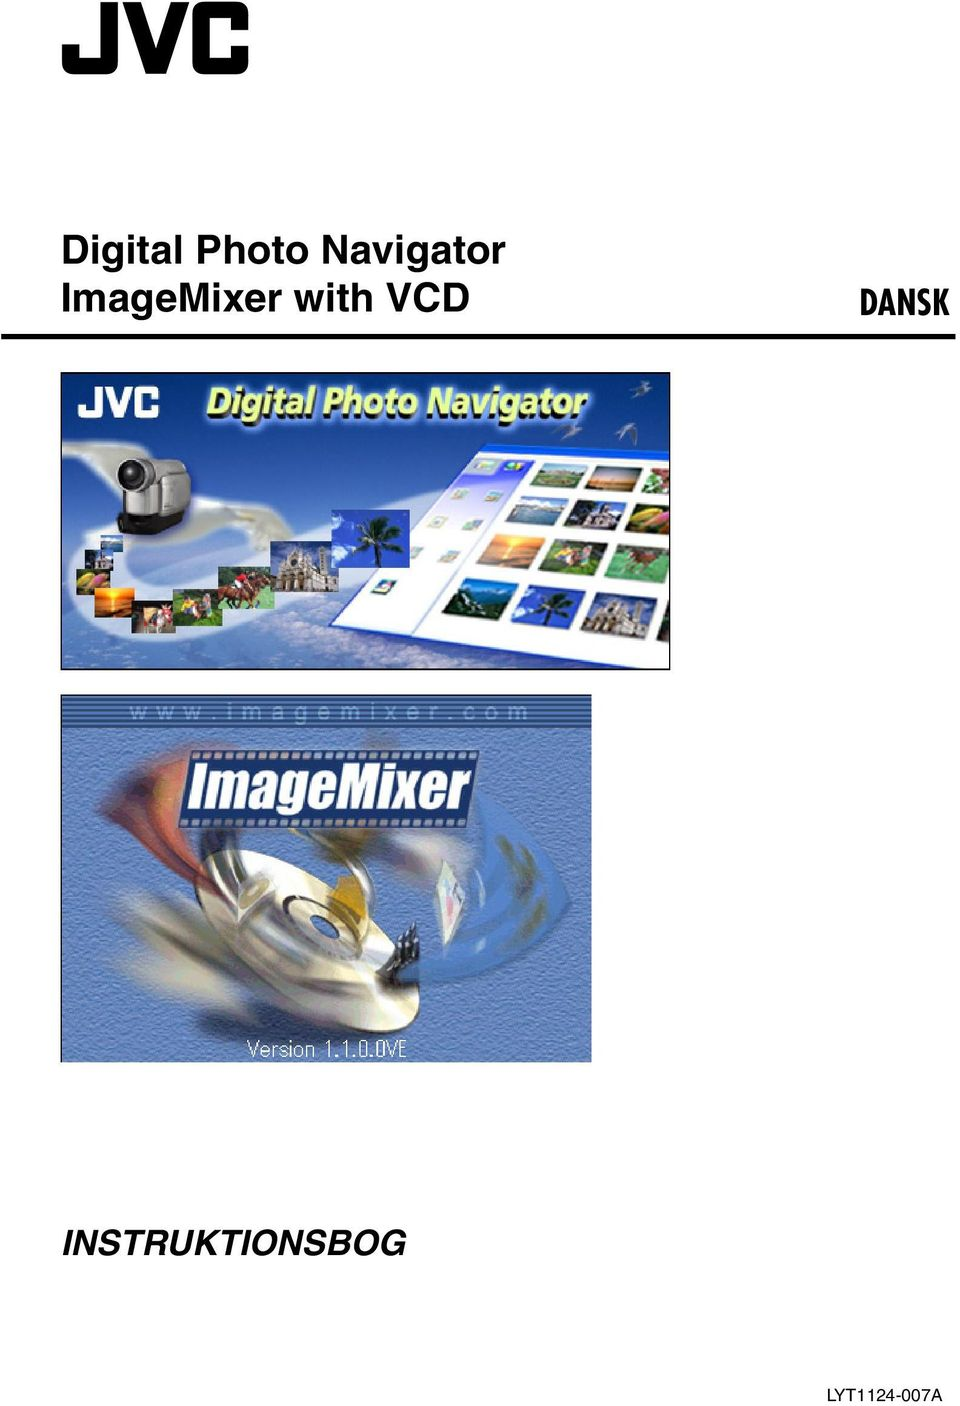 ImageMixer with VCD